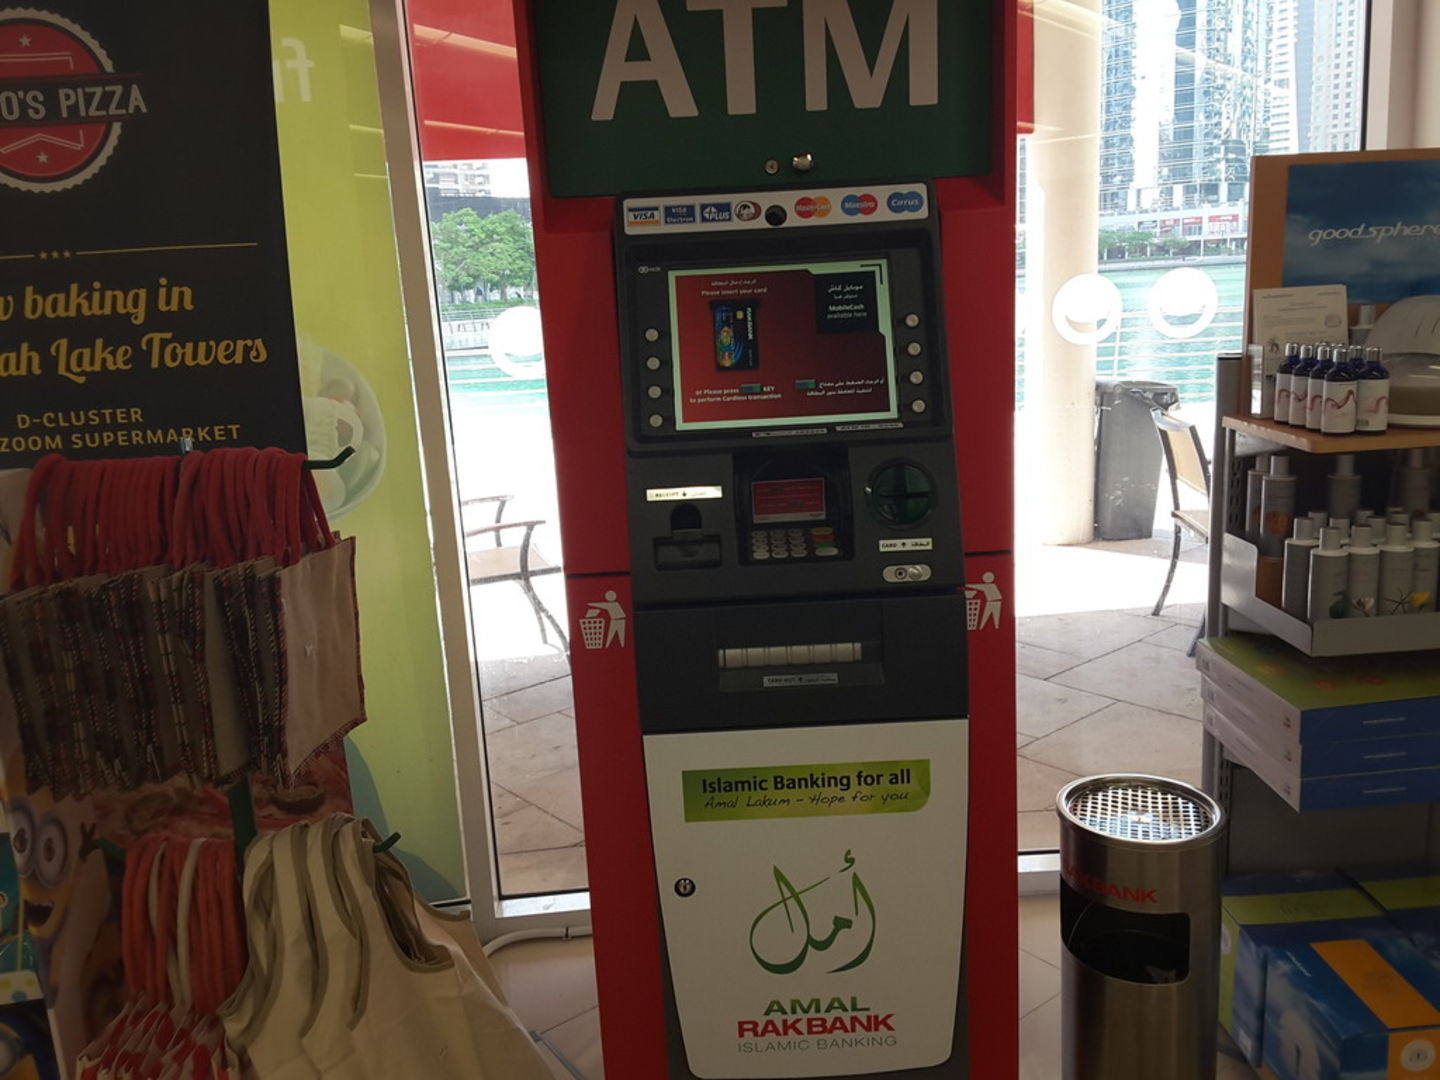 HiDubai-business-rakbank-atm-cdm-finance-legal-banks-atms-jumeirah-lake-towers-al-thanyah-5-dubai-2